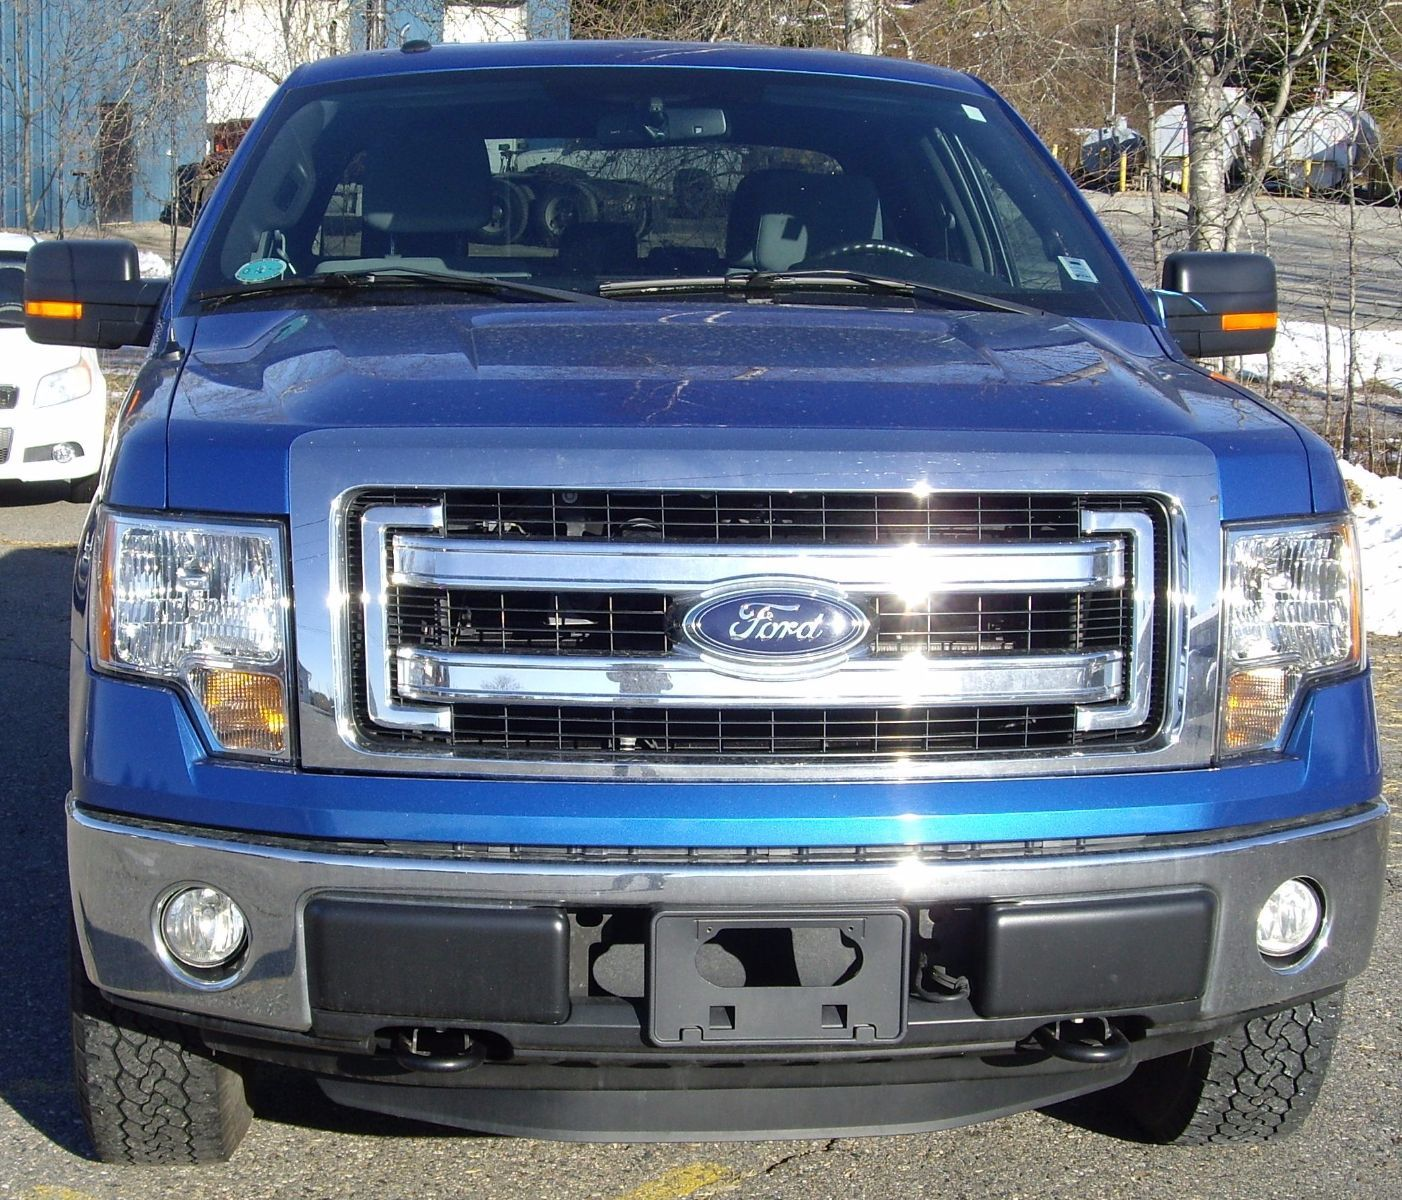 used 2013 ford f 150 xlt in new germany used inventory lake view auto in new germany nova. Black Bedroom Furniture Sets. Home Design Ideas